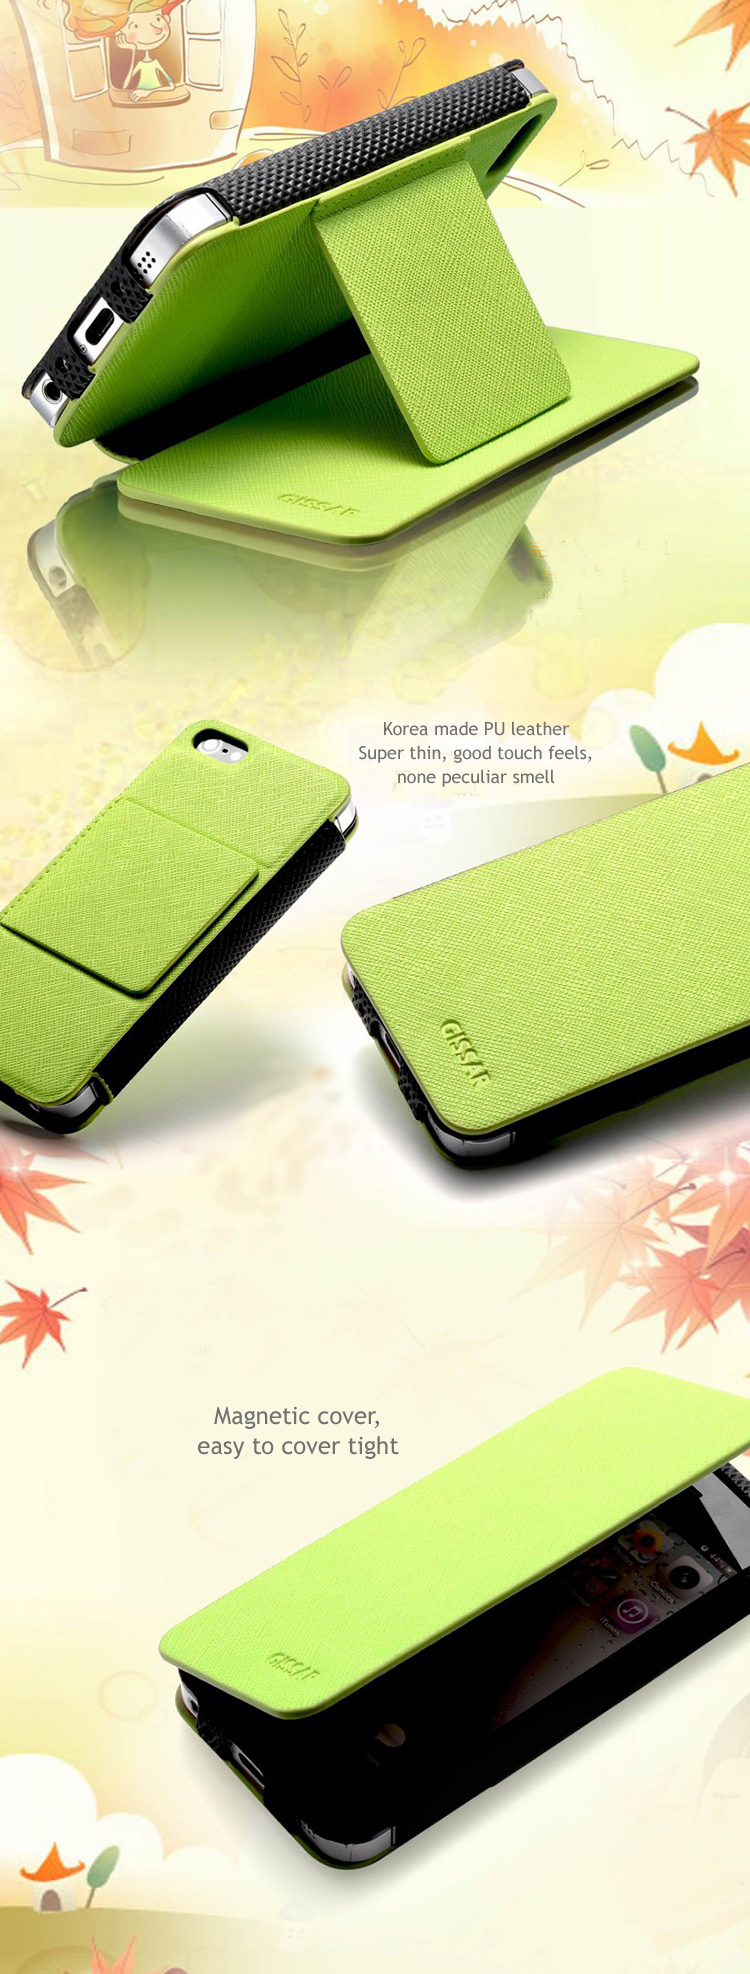 GISSAR design for iPhone 5 Case Skin - Korea made PU leather - Autumn Series- Flip Cover, Stand Feature, Magnet built-in cover